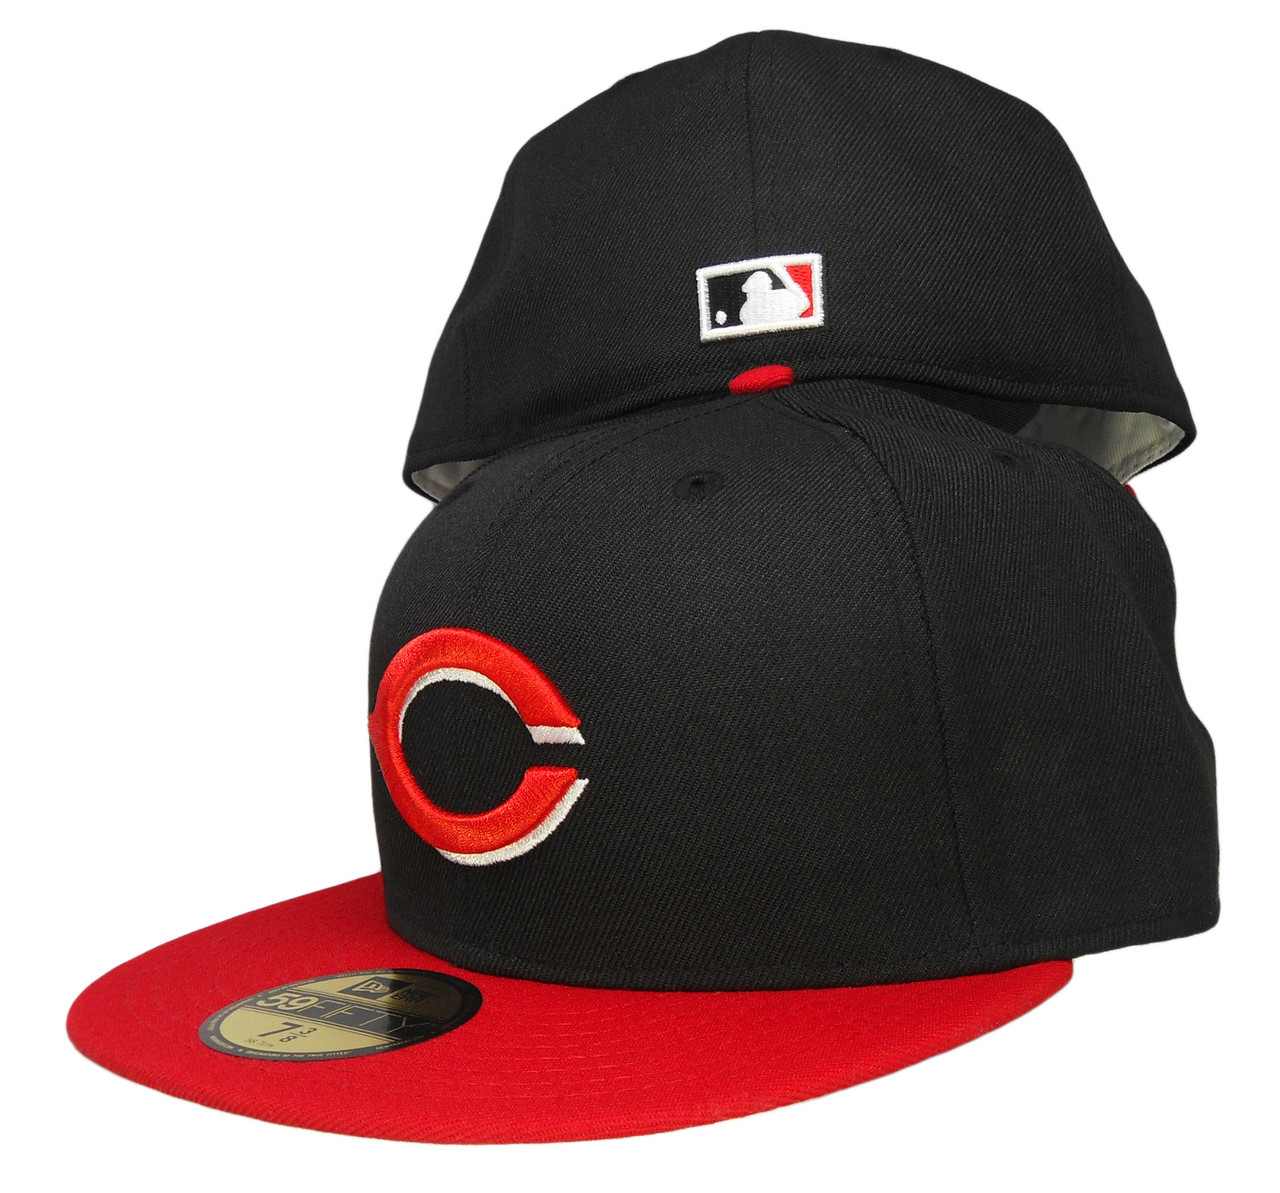 bdfcb5a0c9e34 Cincinnati Reds New Era Gray bottom 59Fifty Fitted Hat - Black